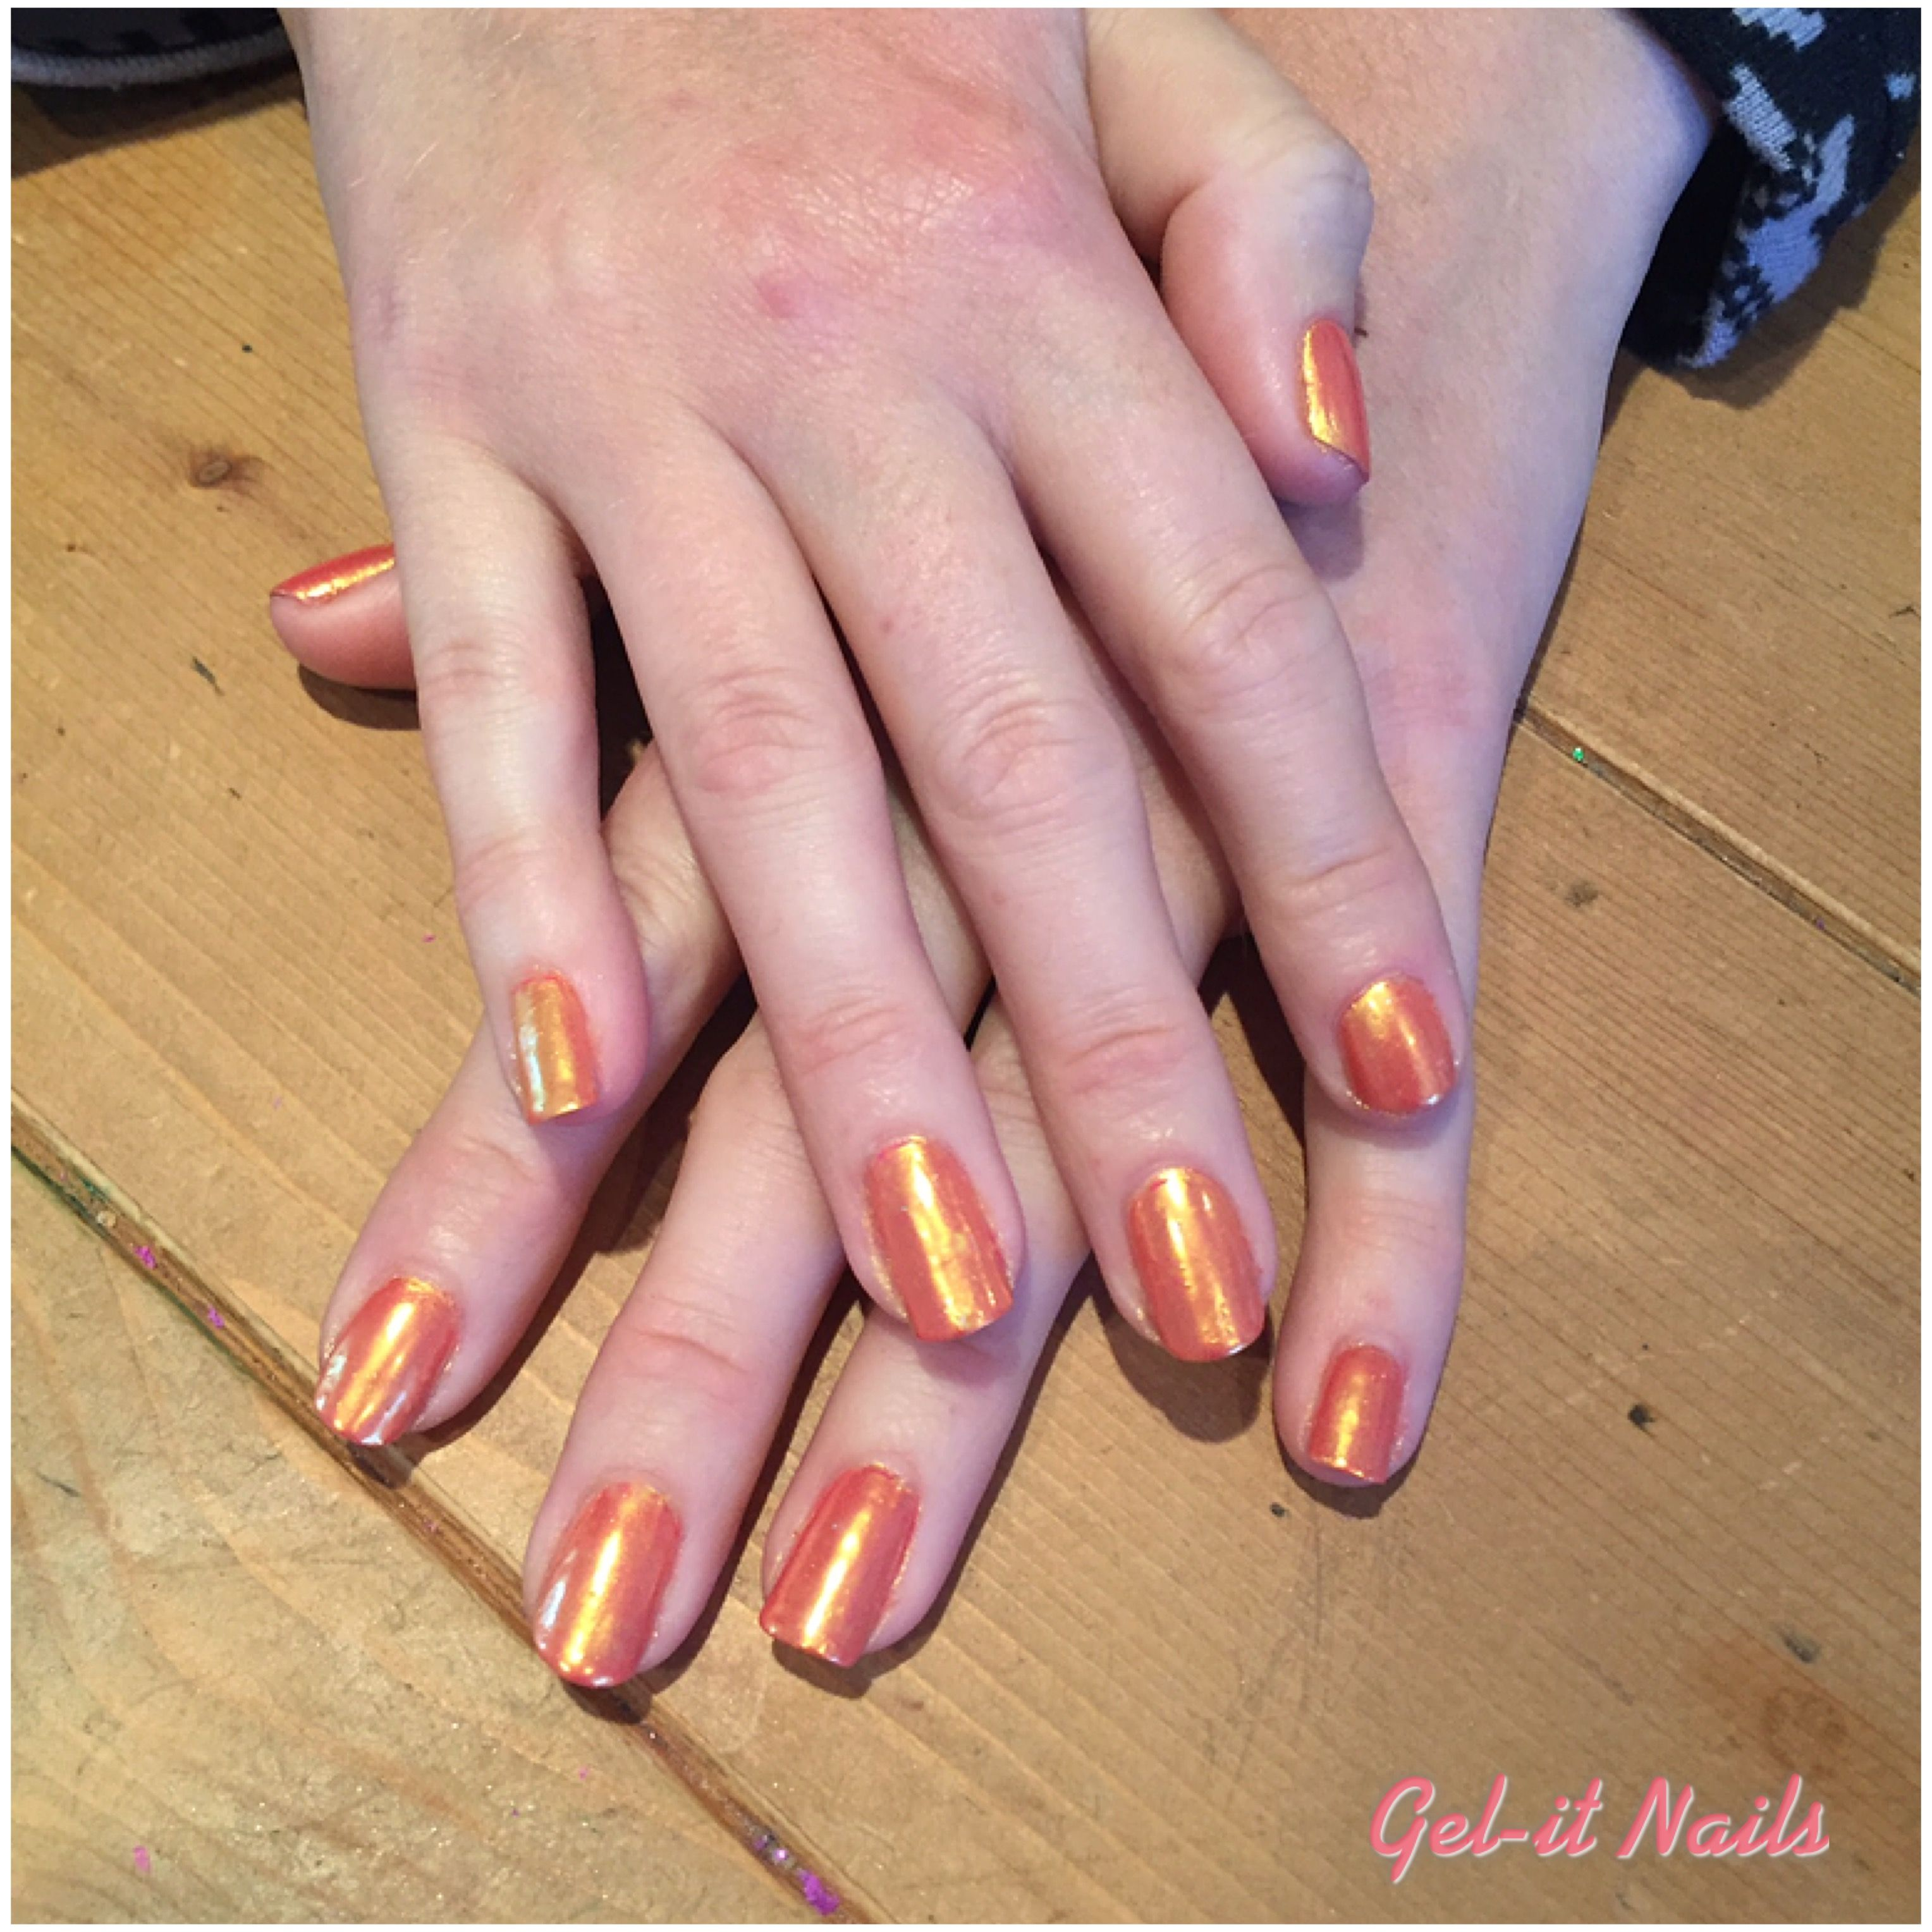 Gold chrome over Gelish \'passion\' | Nails by Gel-it Nails | Pinterest